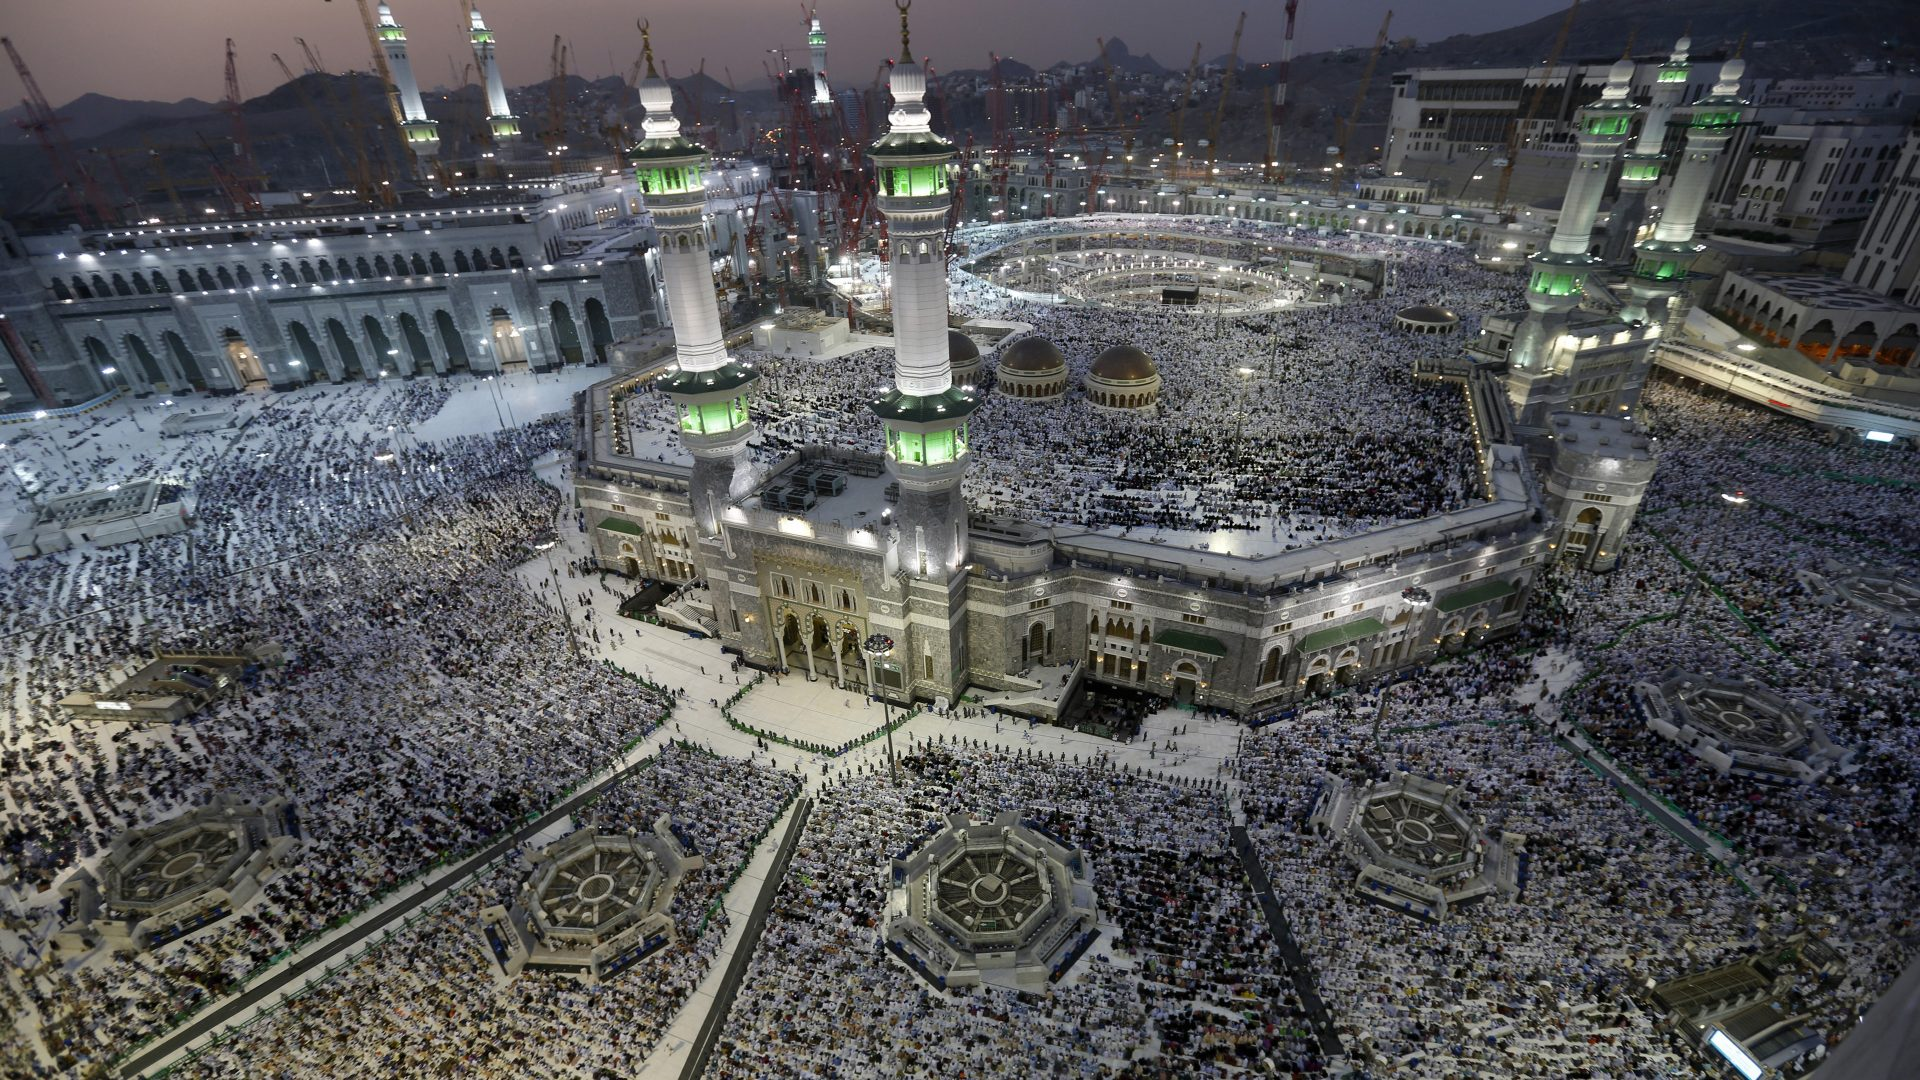 Kaba In Al Masjid Al Haram Greater Holy Mosque In Mecca Saudi Arabia 1366×768 1920×1080